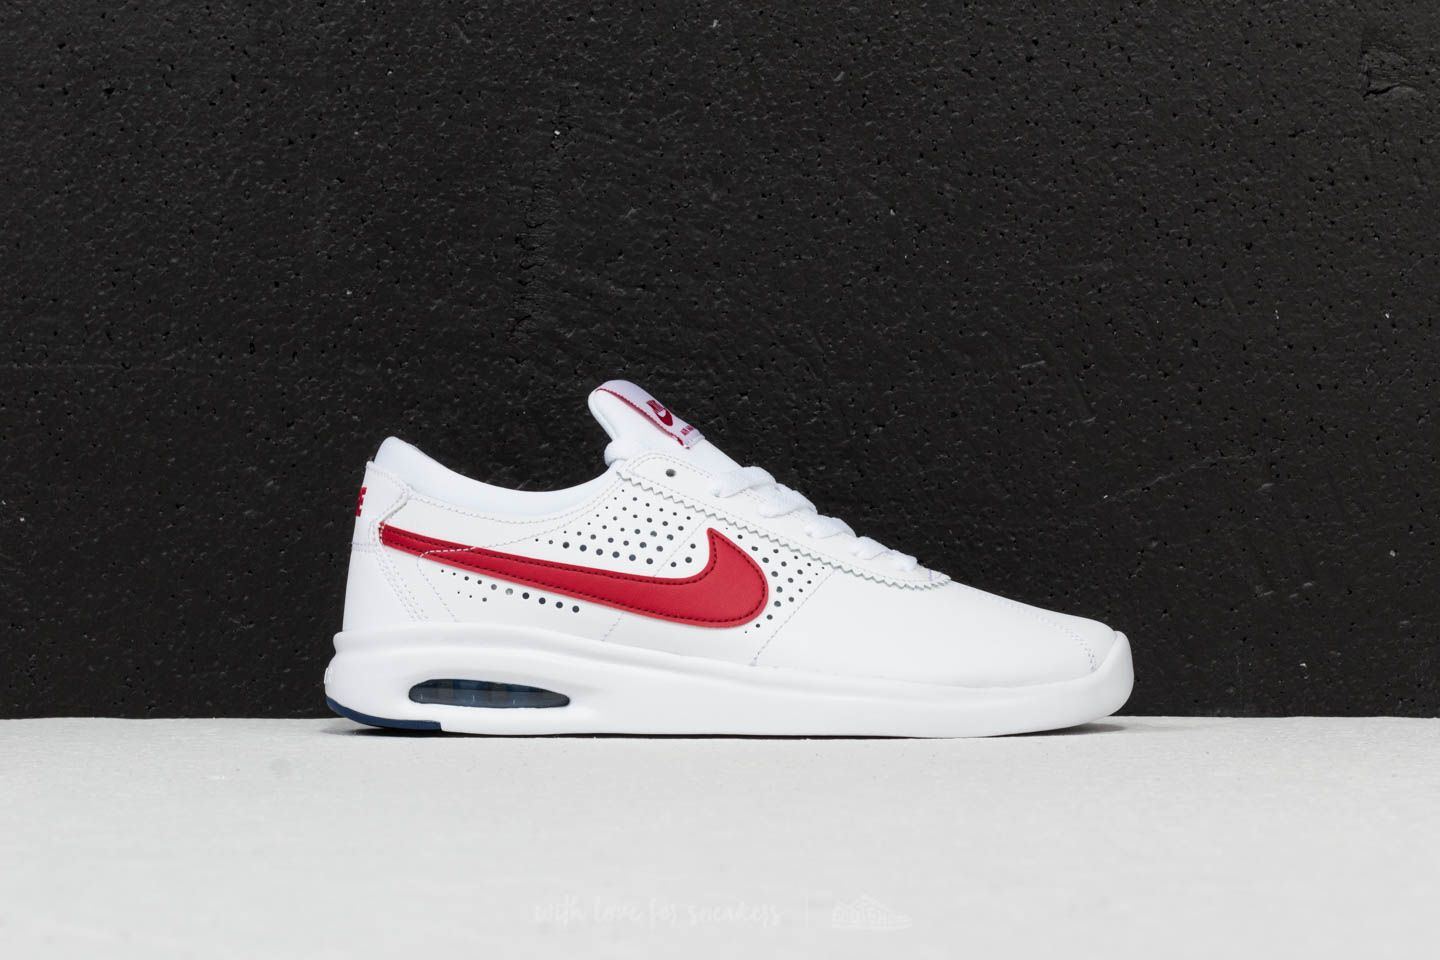 wholesale dealer d8b41 1c355 Nike SB Air Max Bruin Vapor White  Gym Red  Game Royal at a great